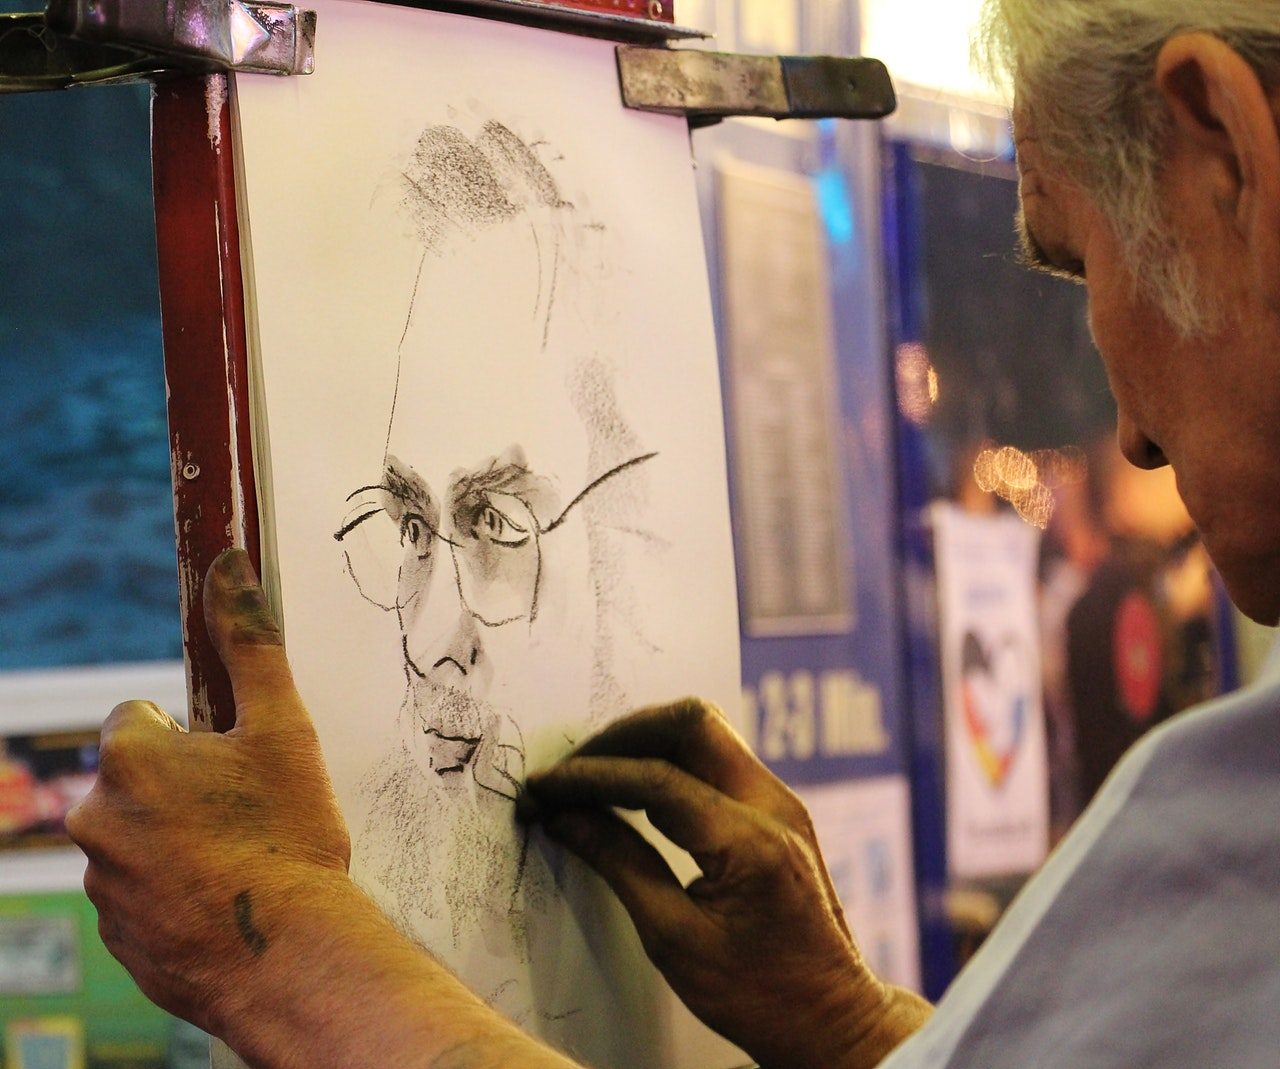 an artist works on charcoal drawing